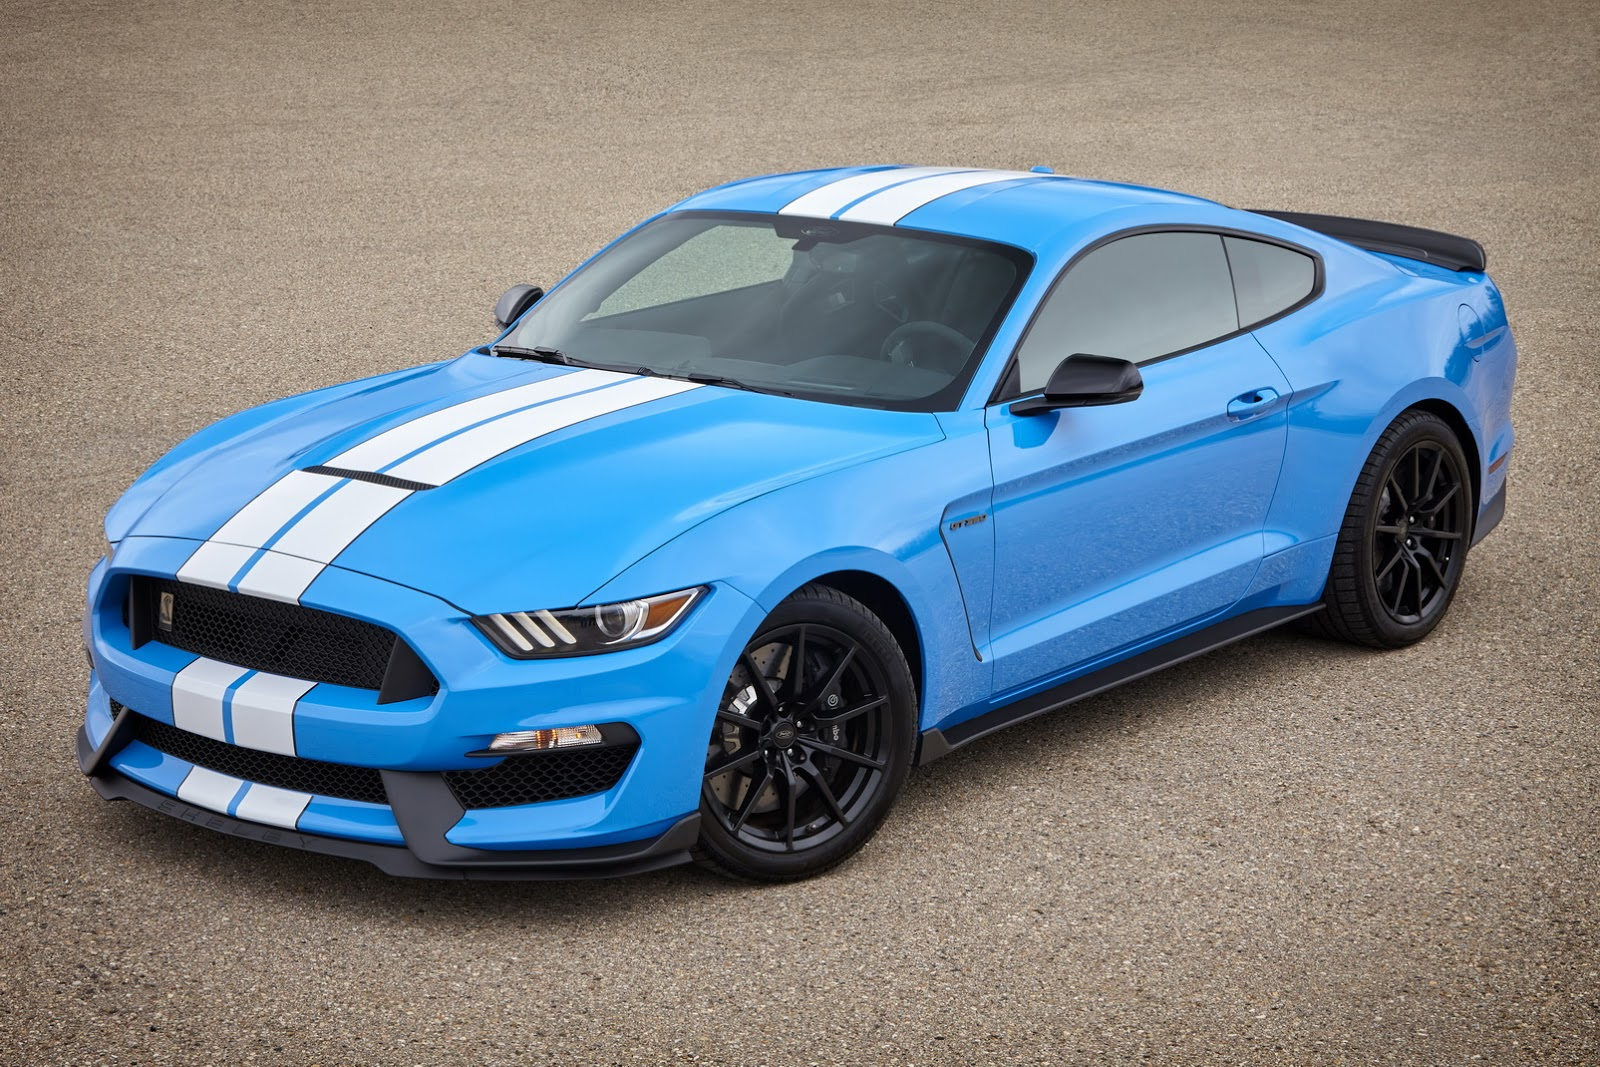 2017 mustang shelby gt350 first pics of new colors are - Mustang gt ...